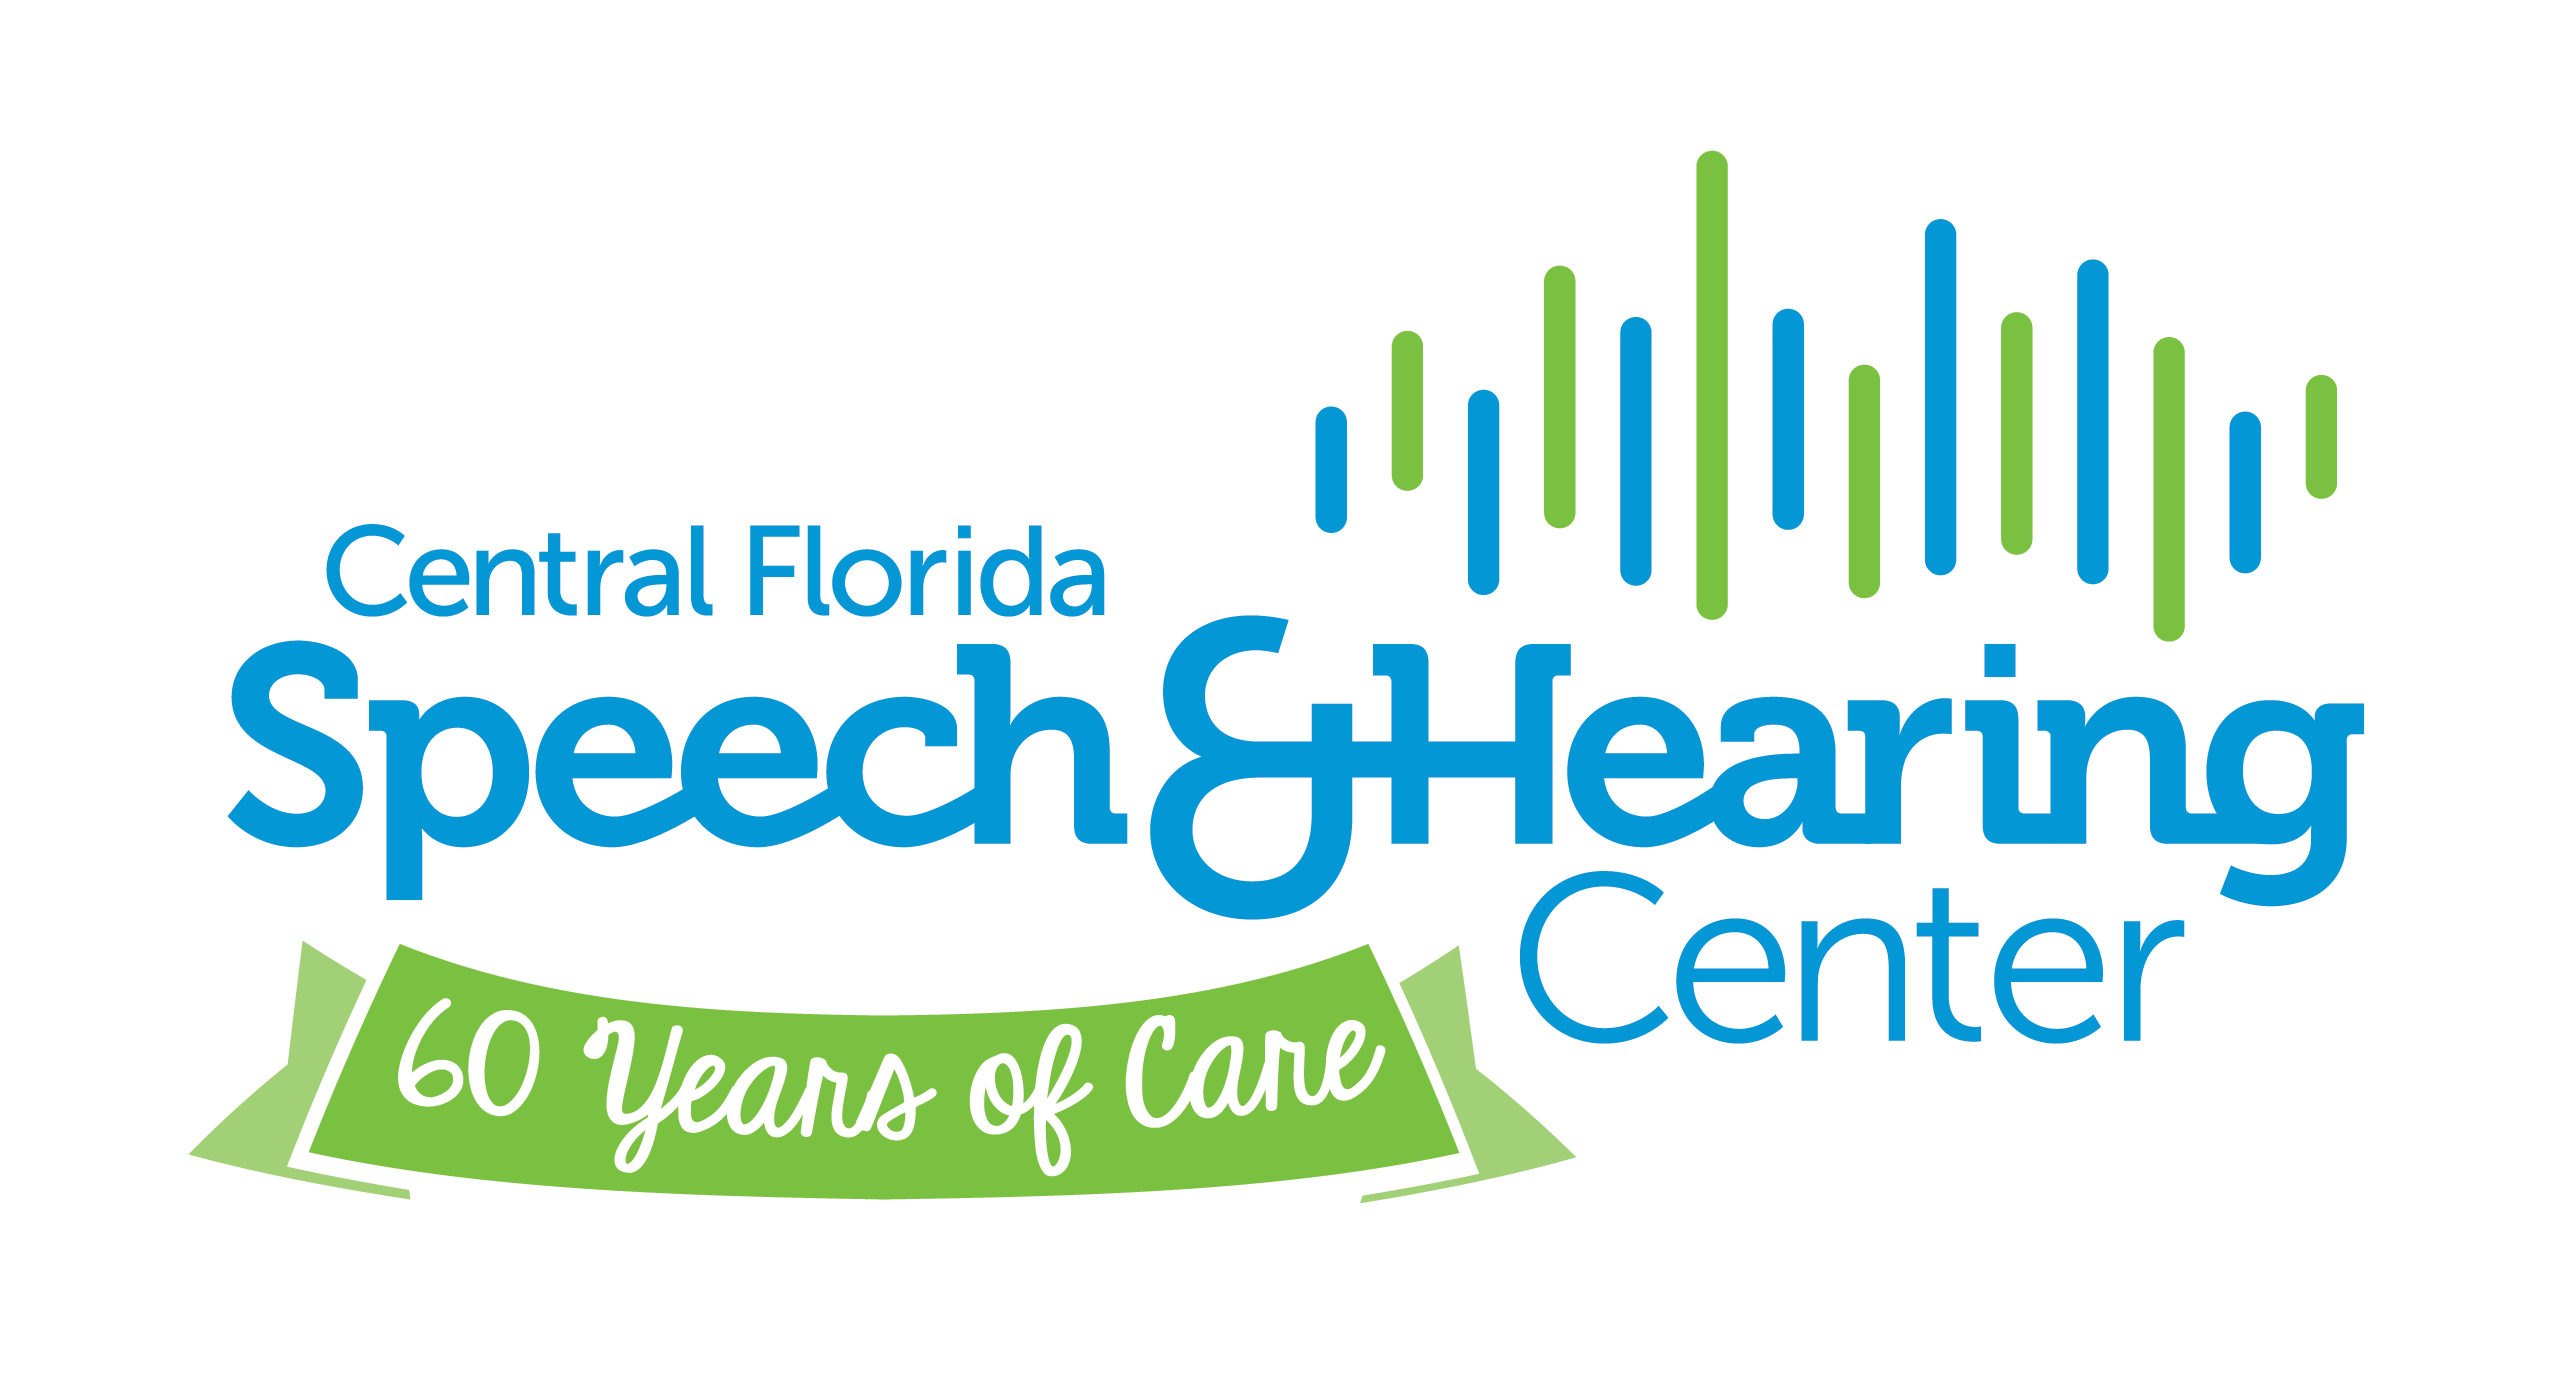 Central Florida Speech & Hearing Center